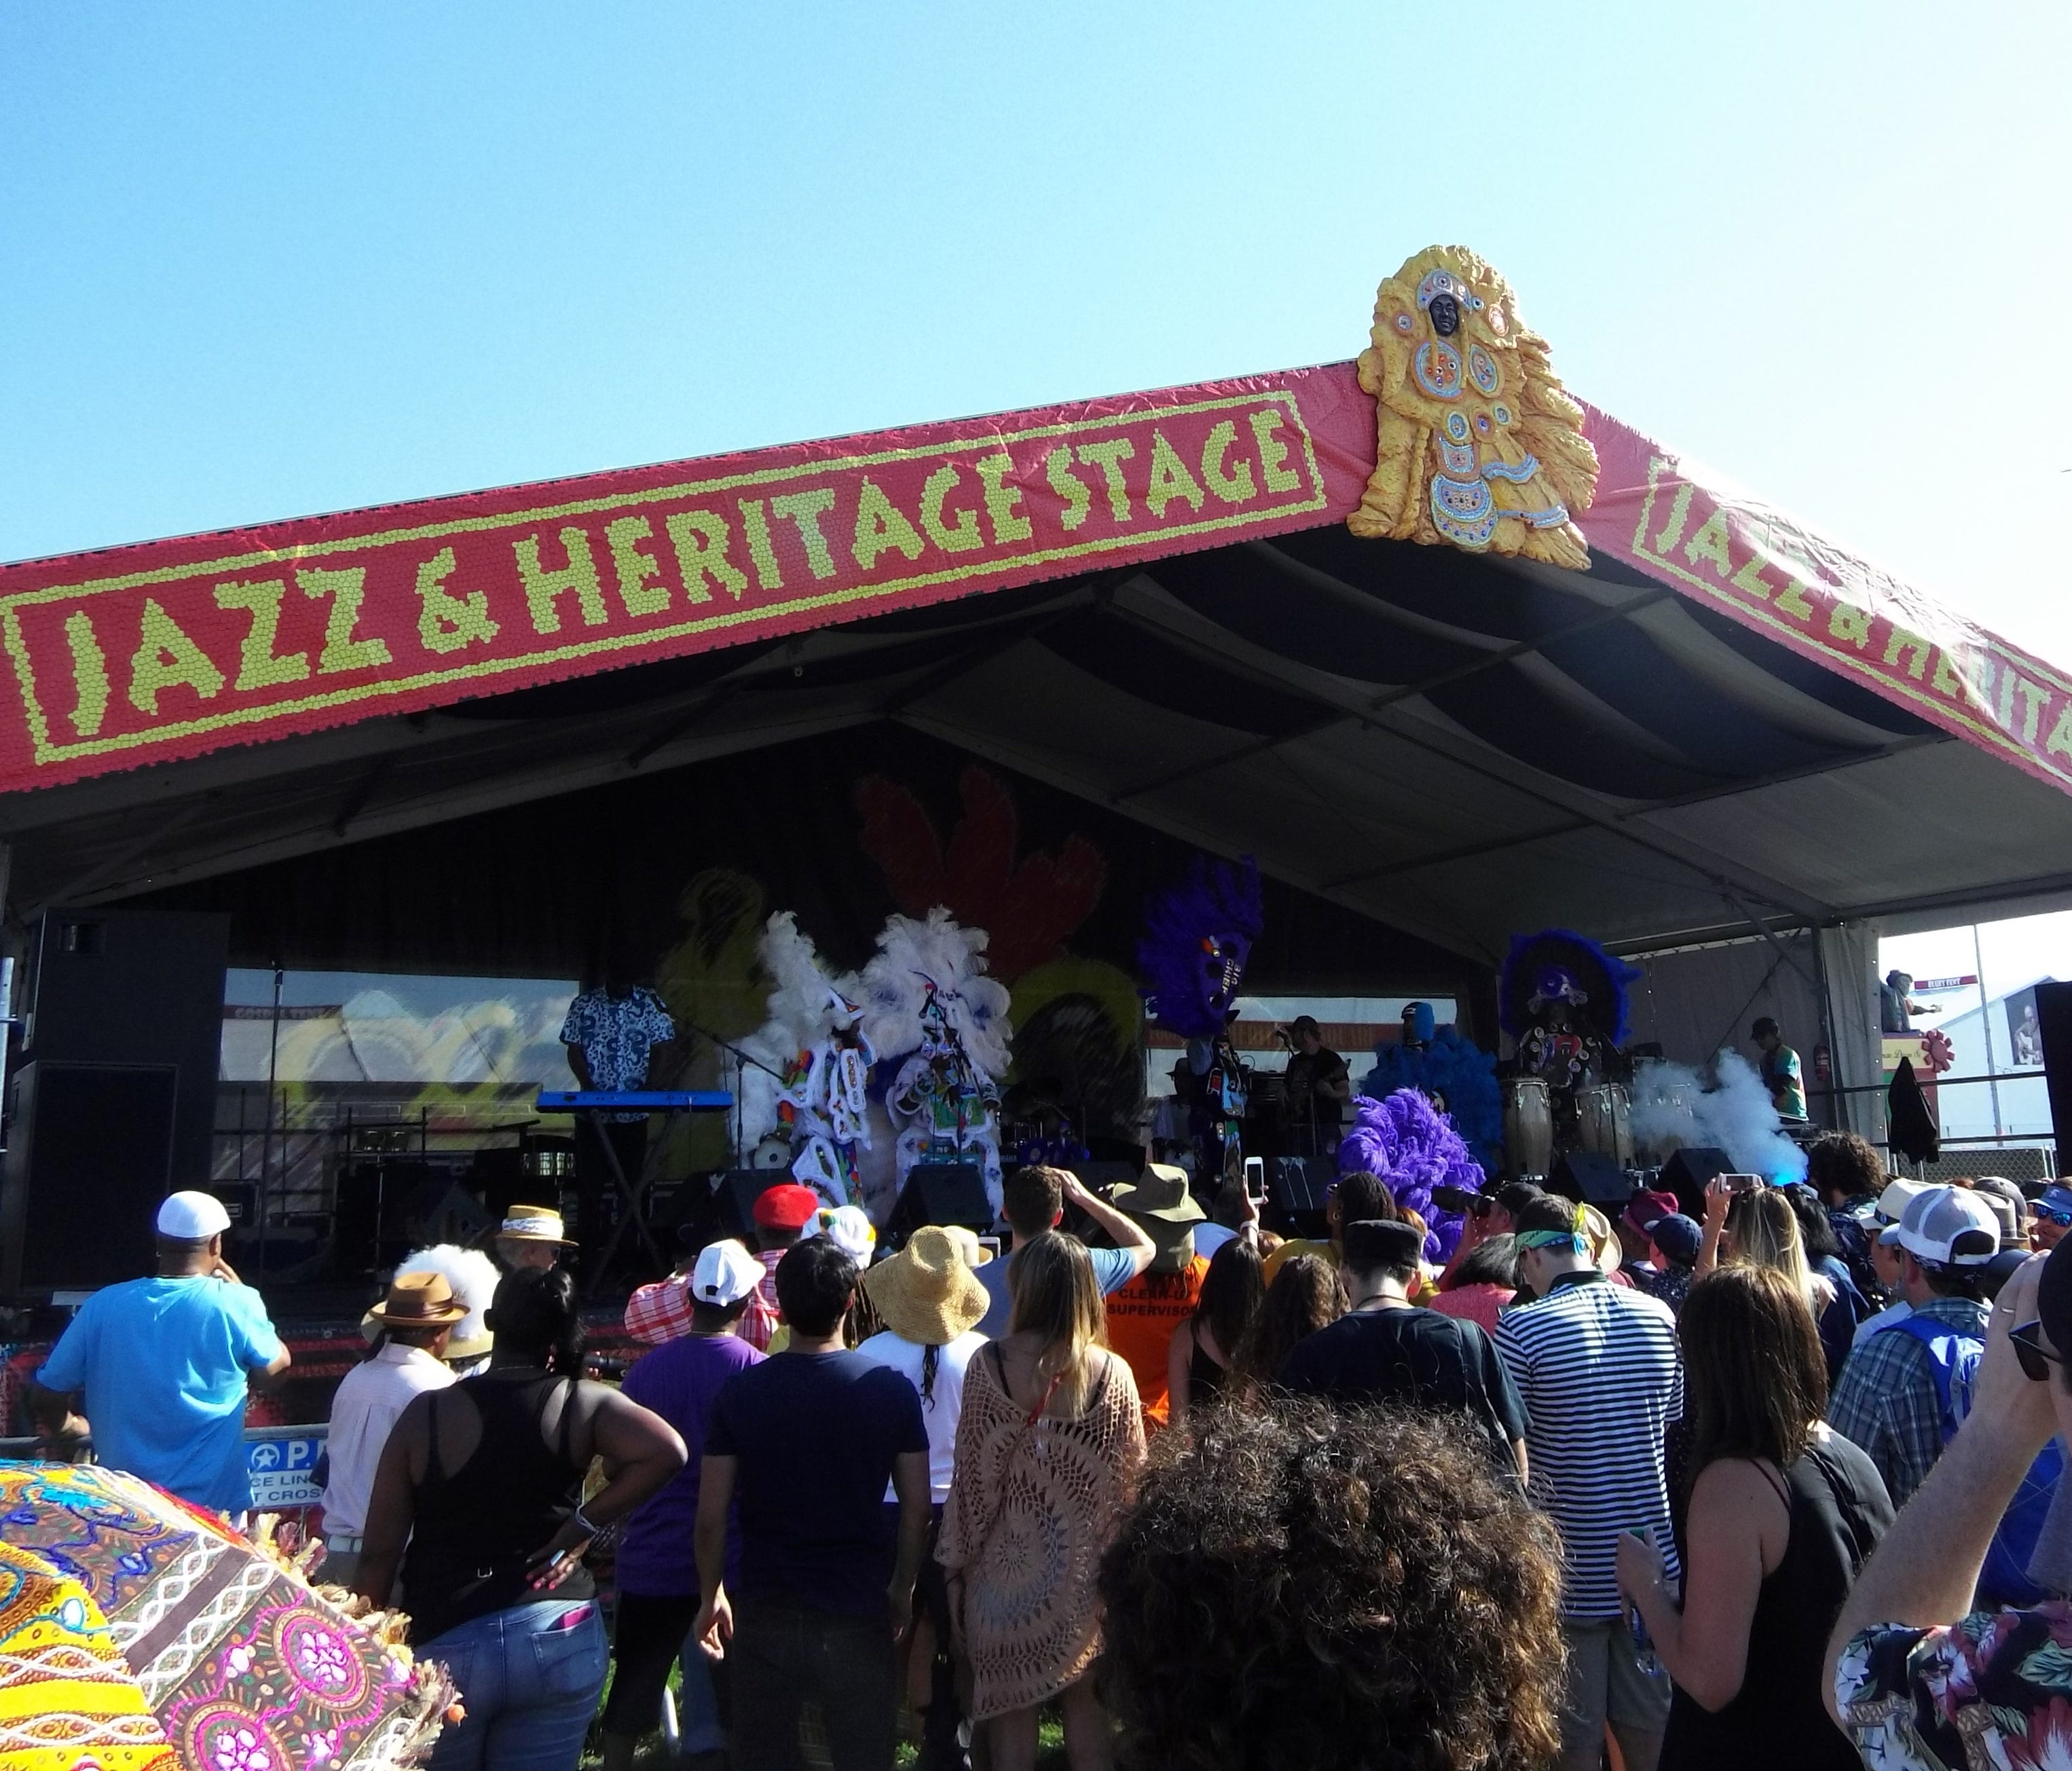 Music from the Jazz & Heritage Stage draws the crowds.